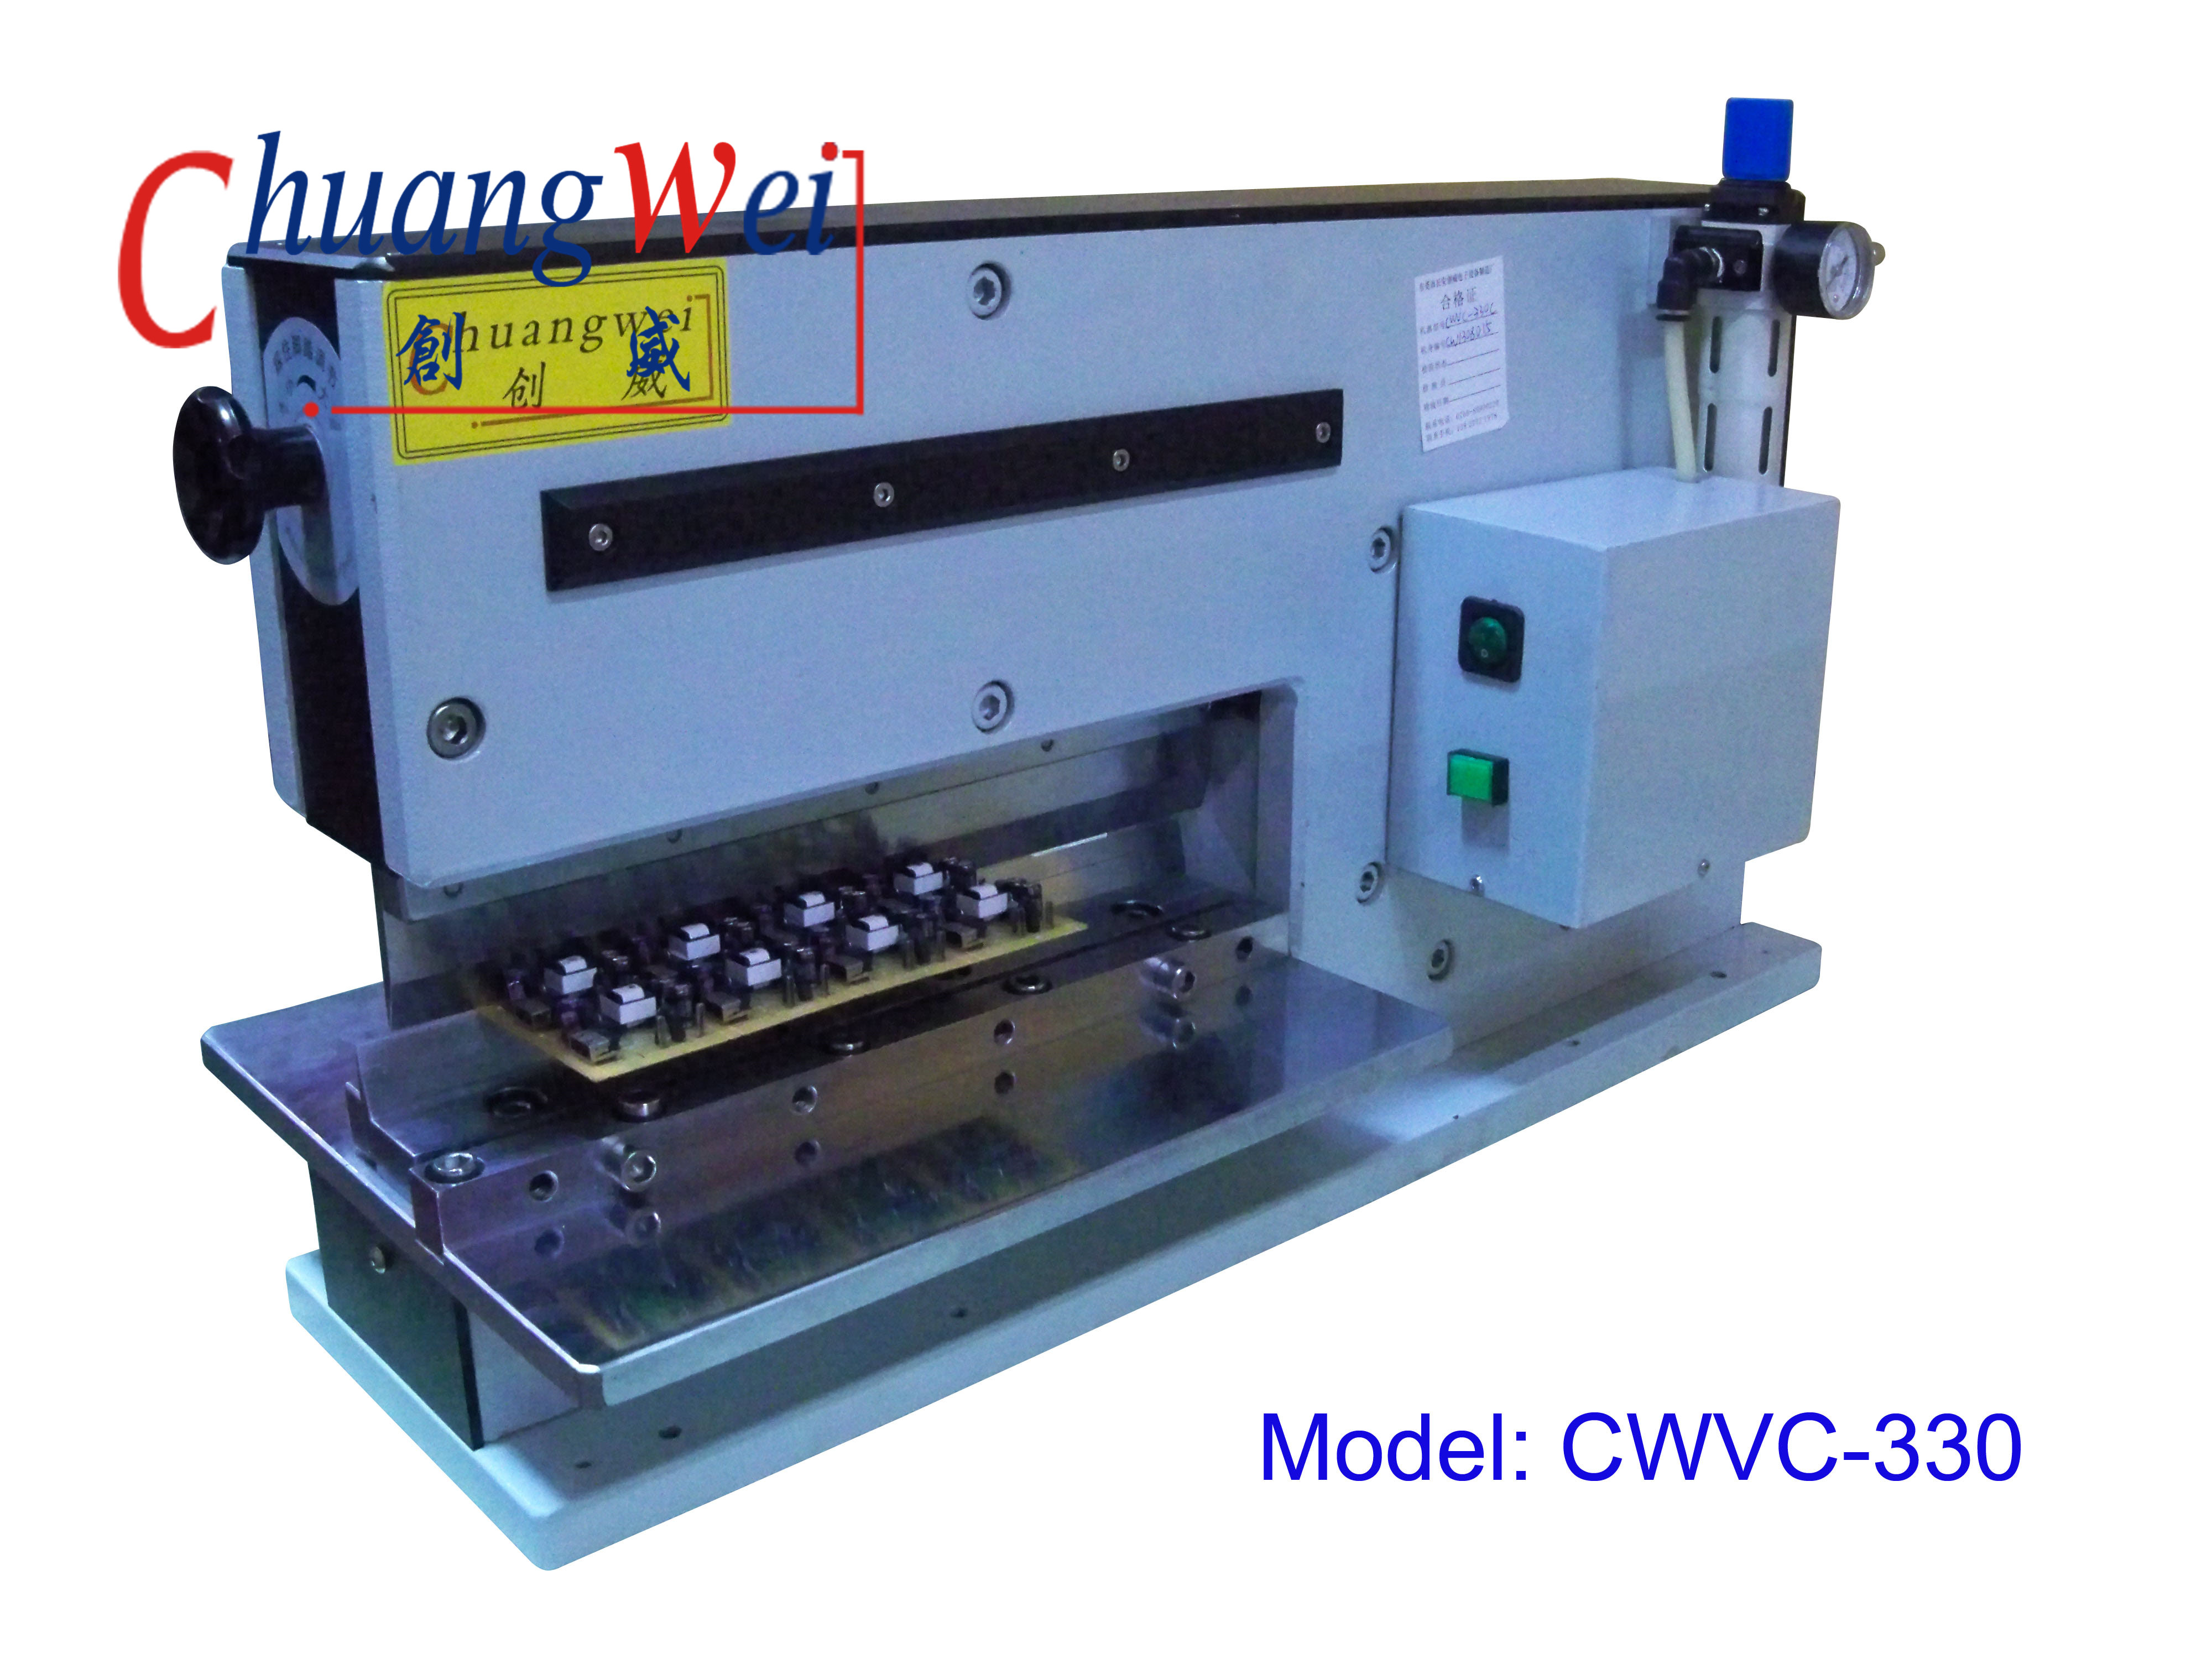 Fiberglass PCB Cutting Equipment,CWVC-330J